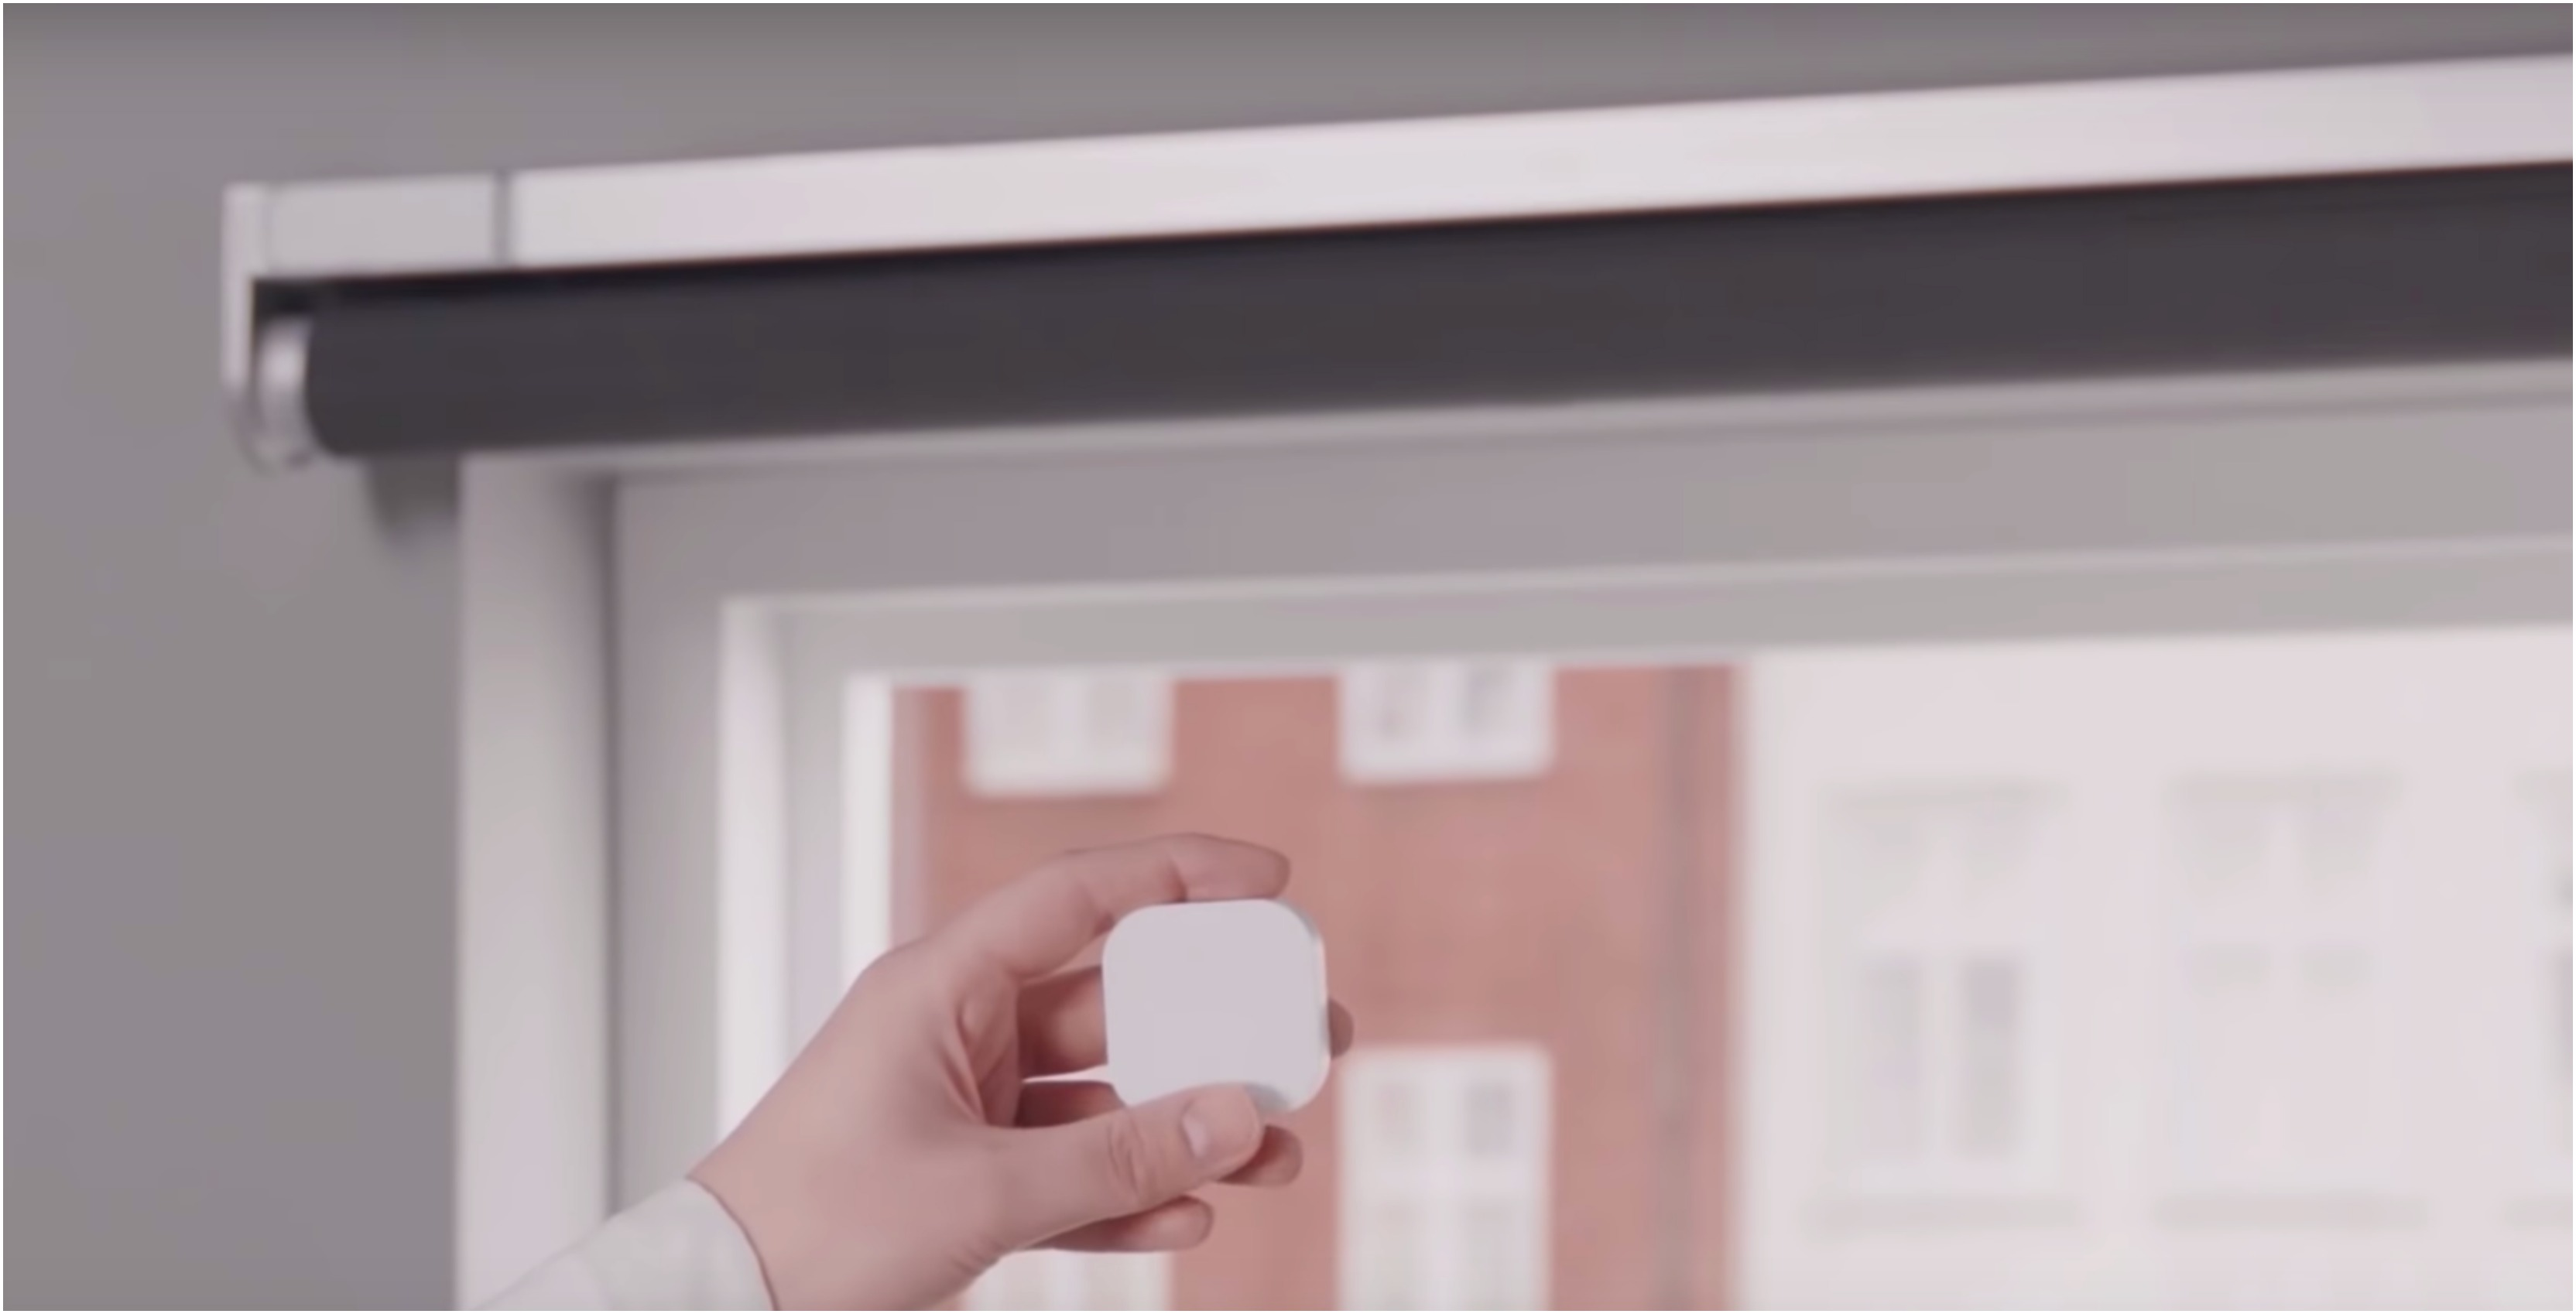 Window Blinds Ikea Ikea Launches Blackout Window Blinds As Part Of Smart Lighting Series